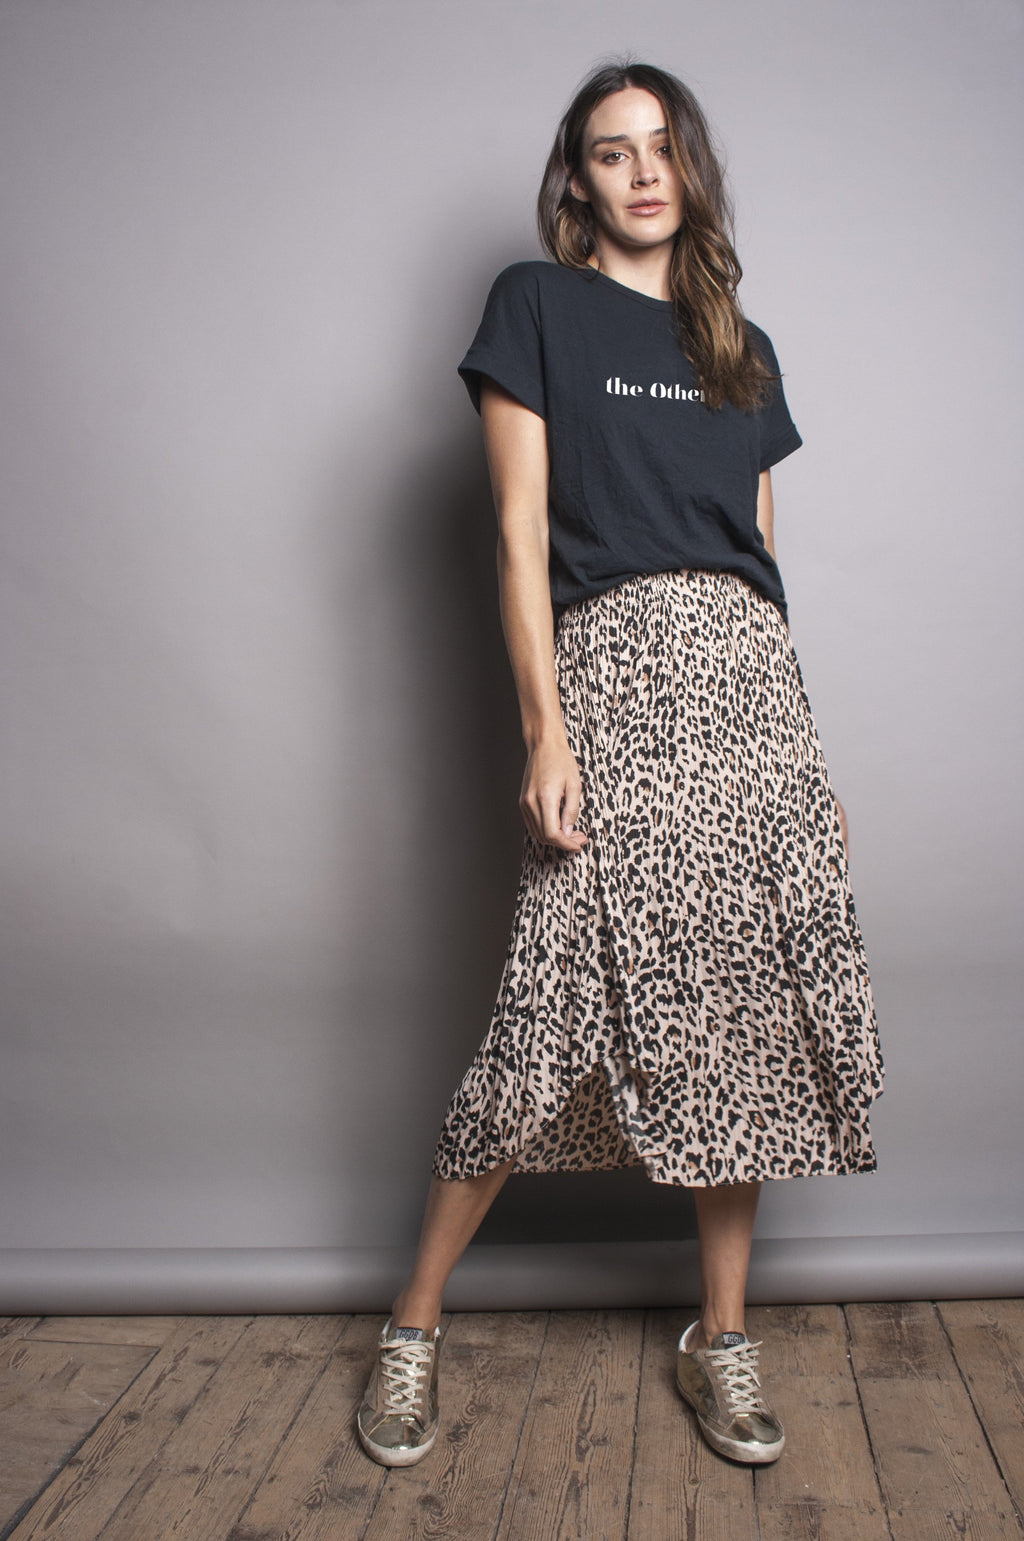 We Are The Others Pleated Skirt - Leopard